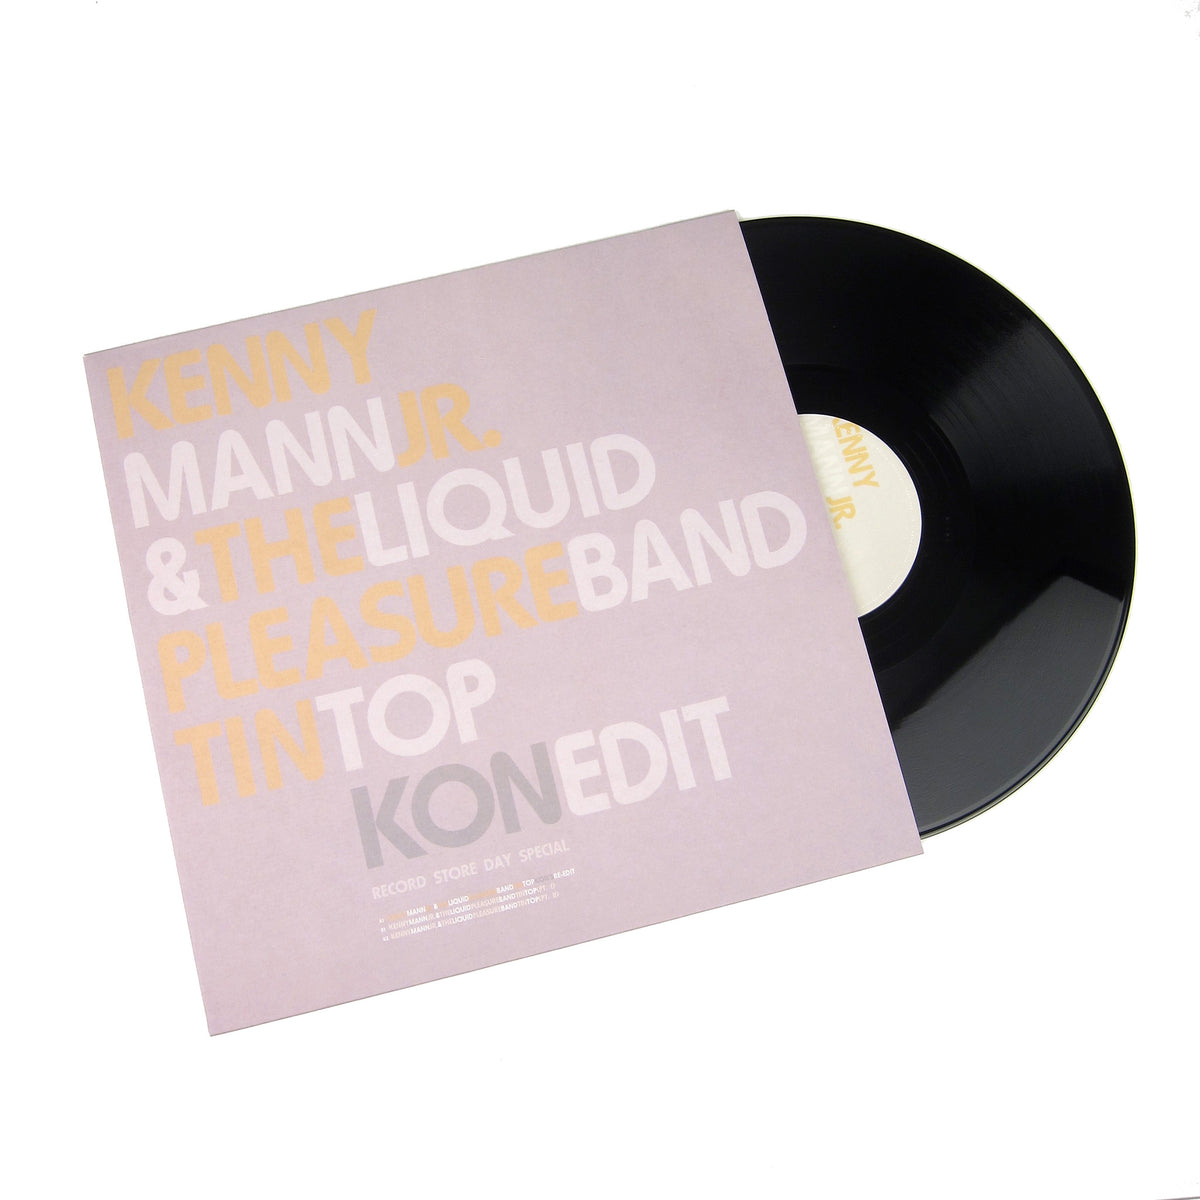 "Kenny Mann Jr. & Liquid Pleasure: Tin Top (Kon Edit) Vinyl 12"" (Record Store Day)"